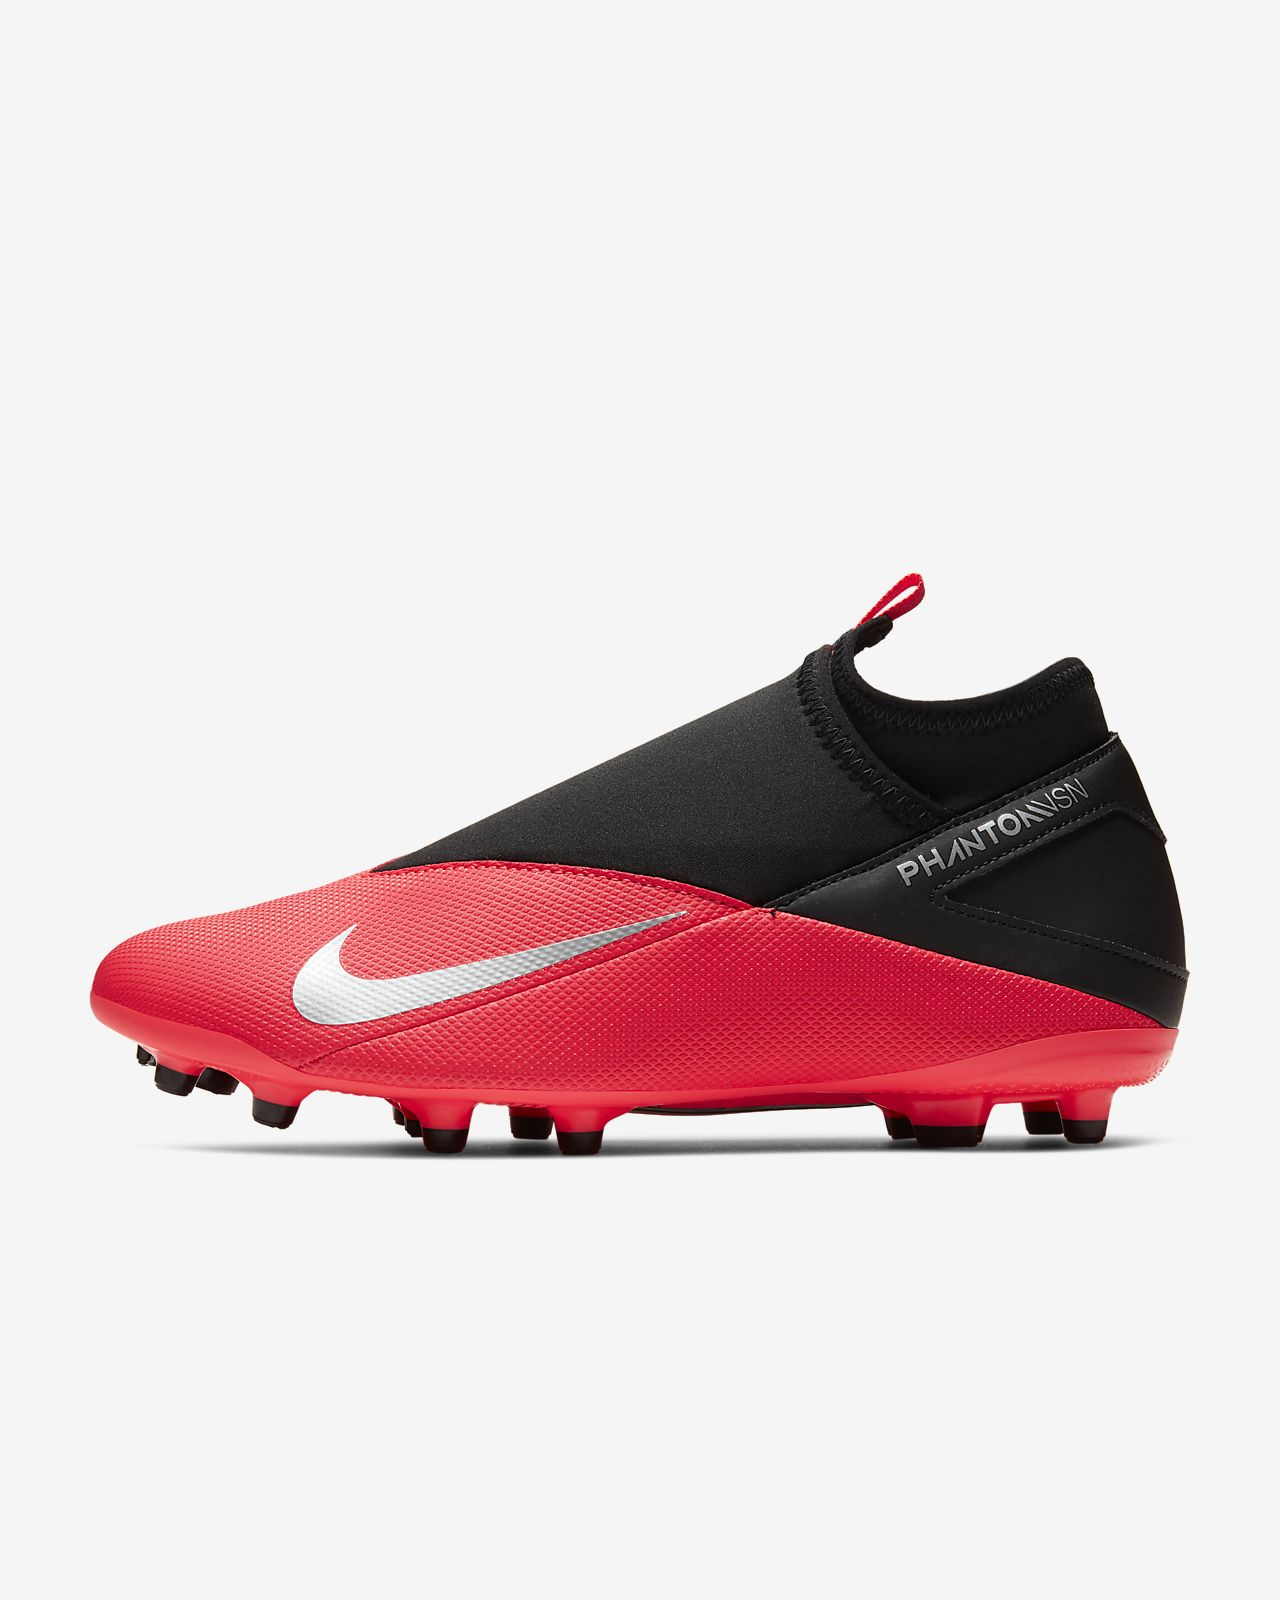 Nike Phantom Vision 2 Club Dynamic Fit MG Multi-Ground Football Boot